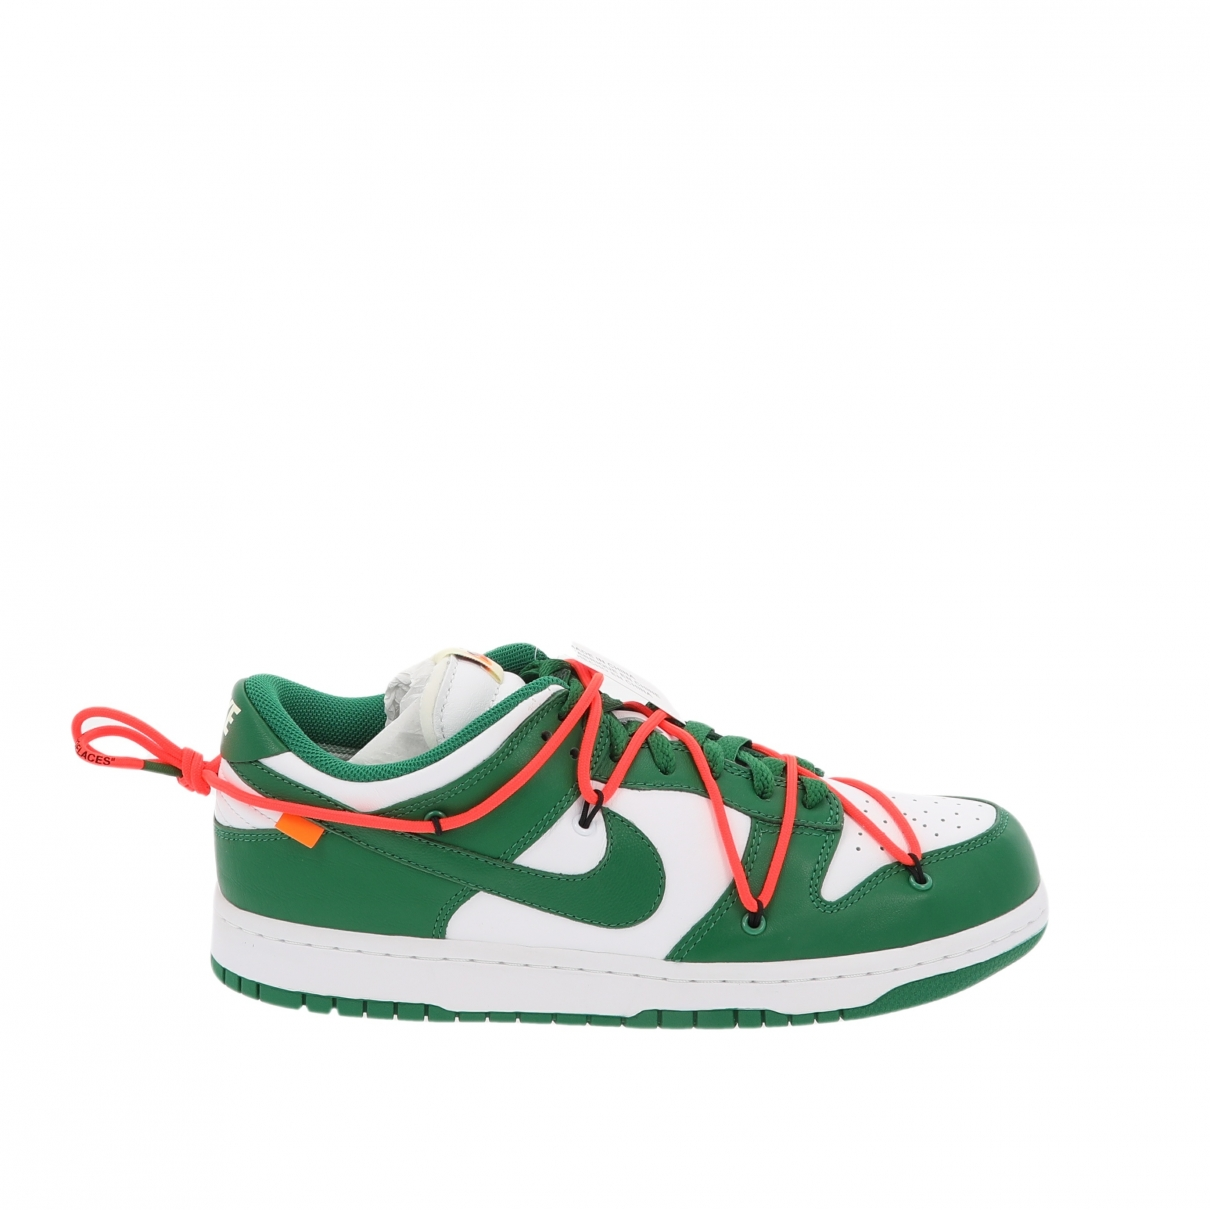 Nike X Off-white Dunk Low Green Leather Trainers for Men 9.5 US